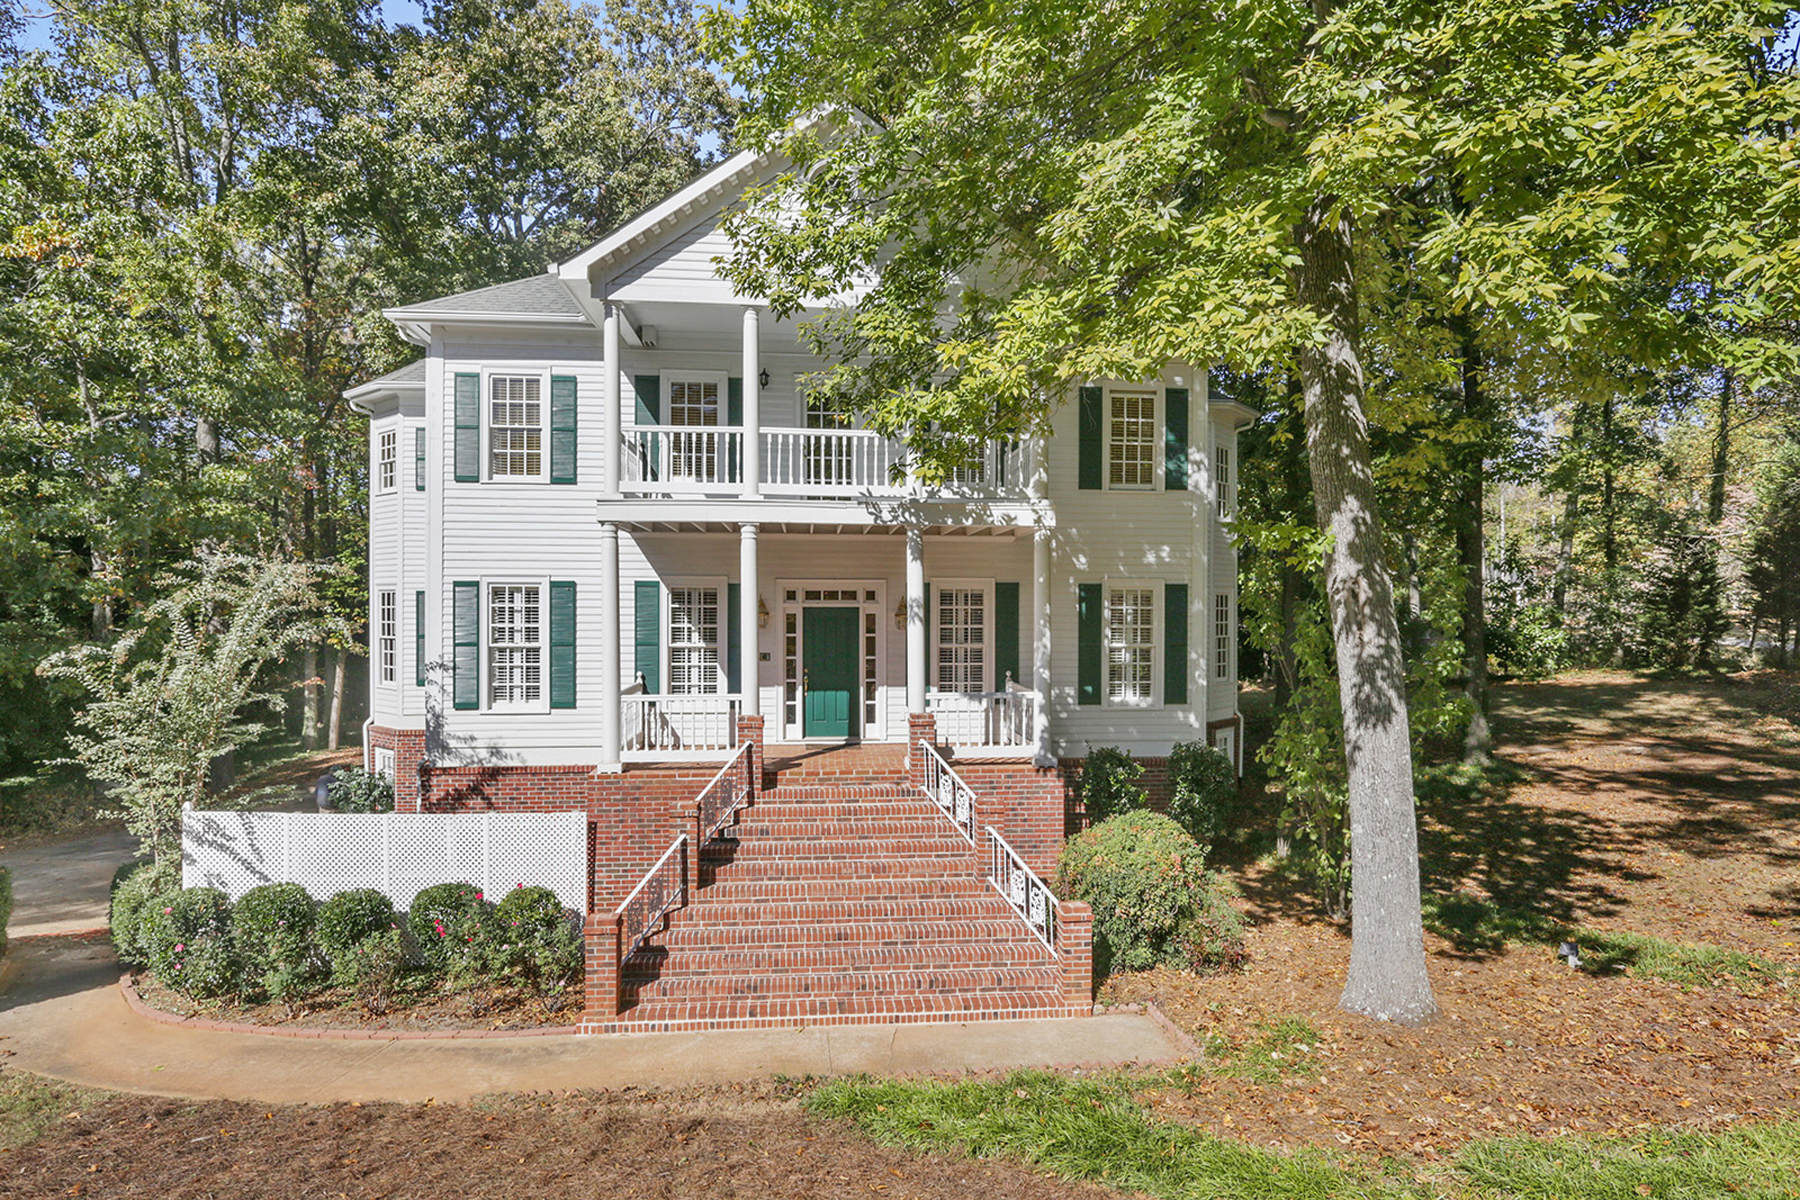 Single Family Home for Active at Gorgeous Antebellum Reproduction 101 Old Mountain Road Powder Springs, Georgia 30127 United States